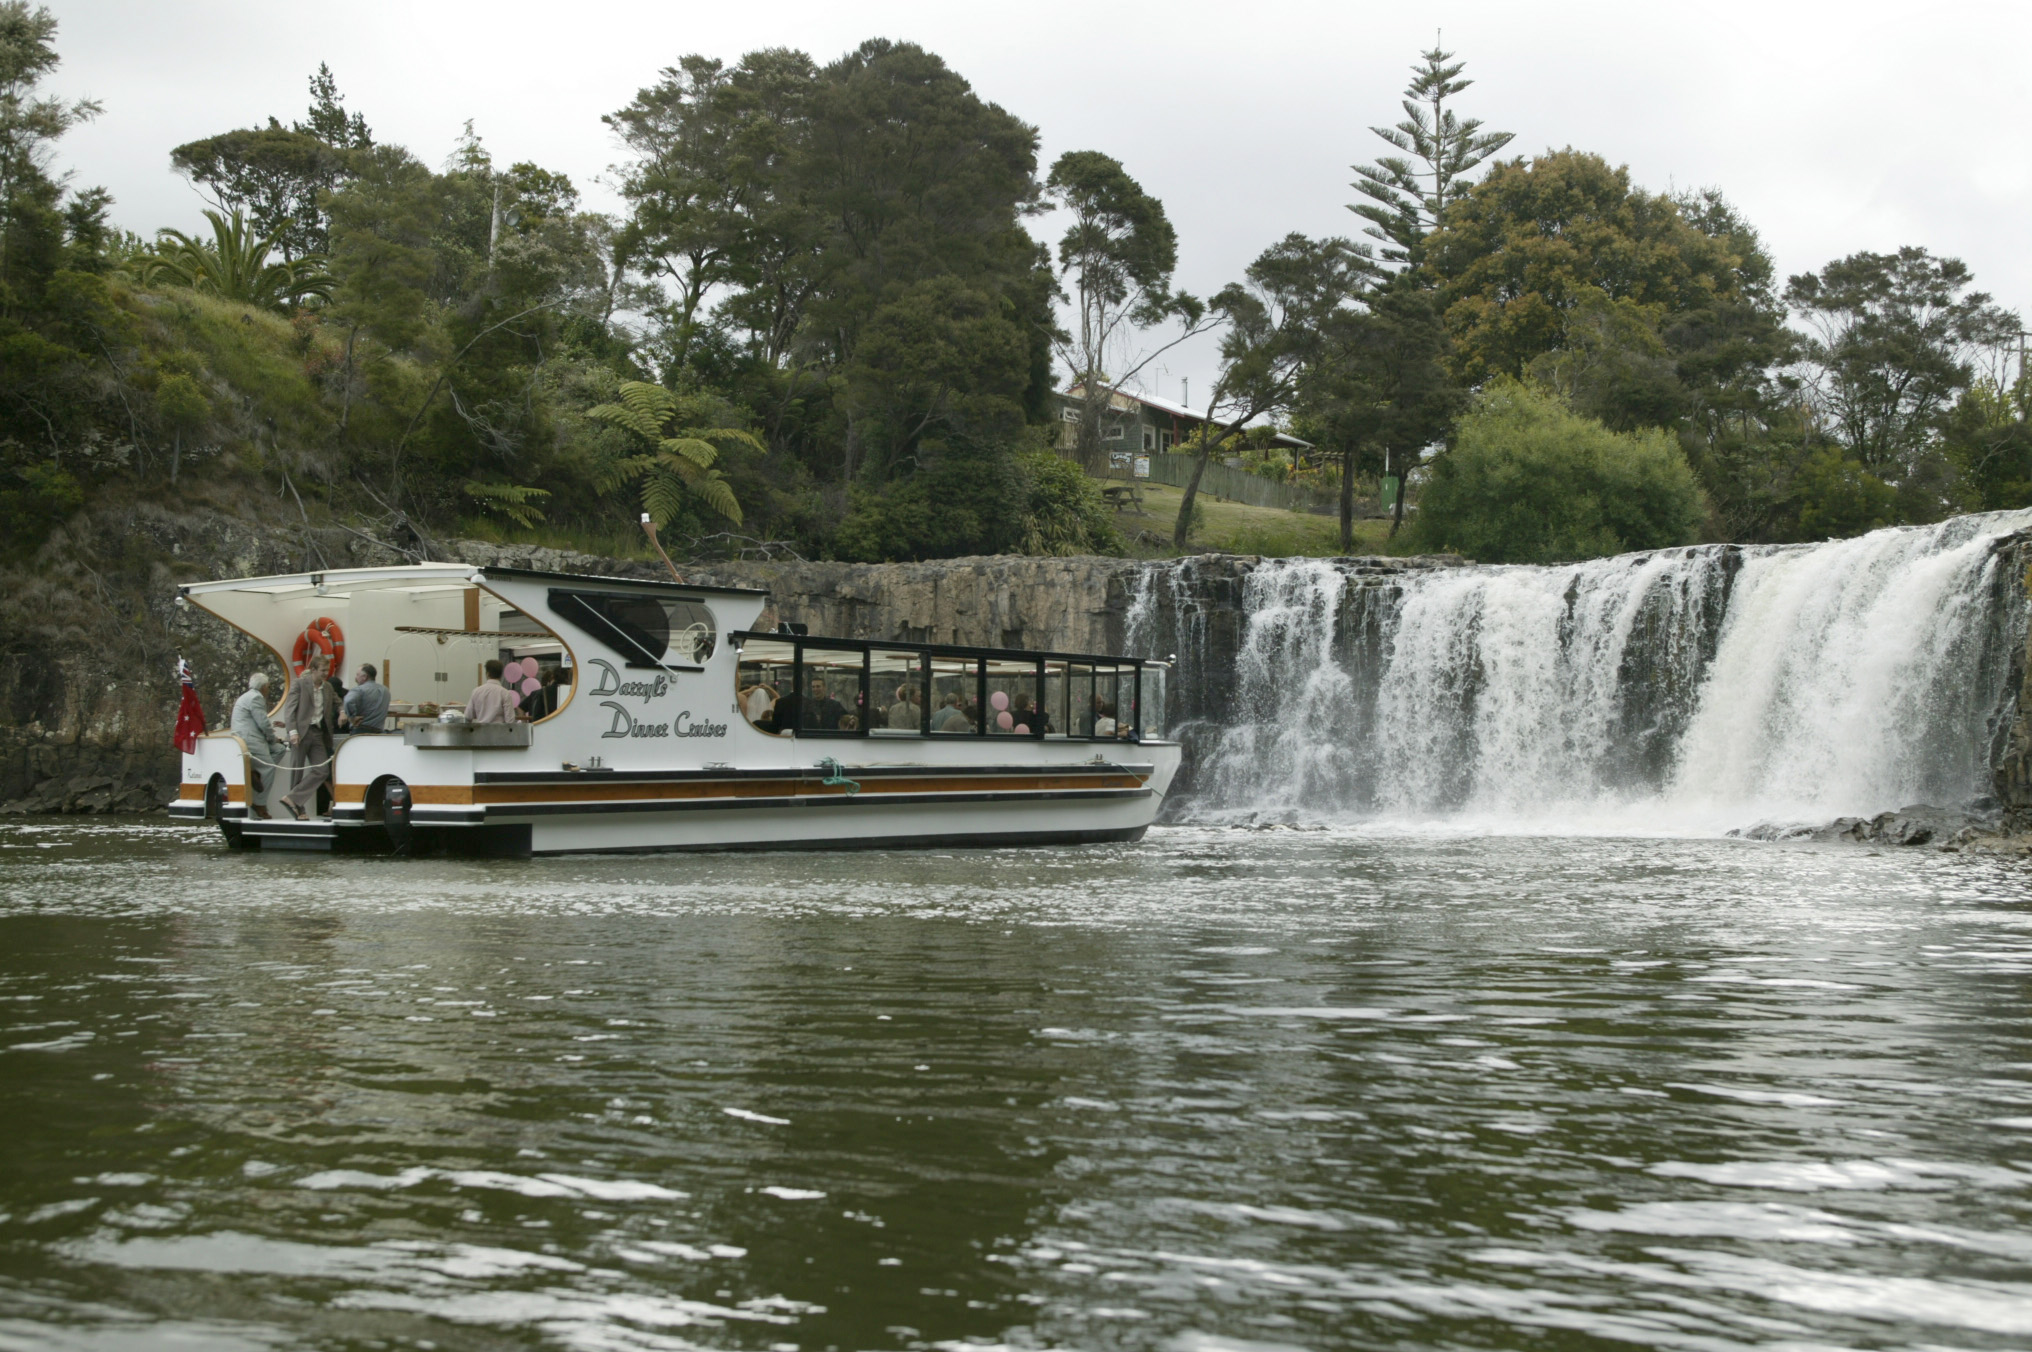 dinner cruise to haruru falls near paihia in the bay of islands